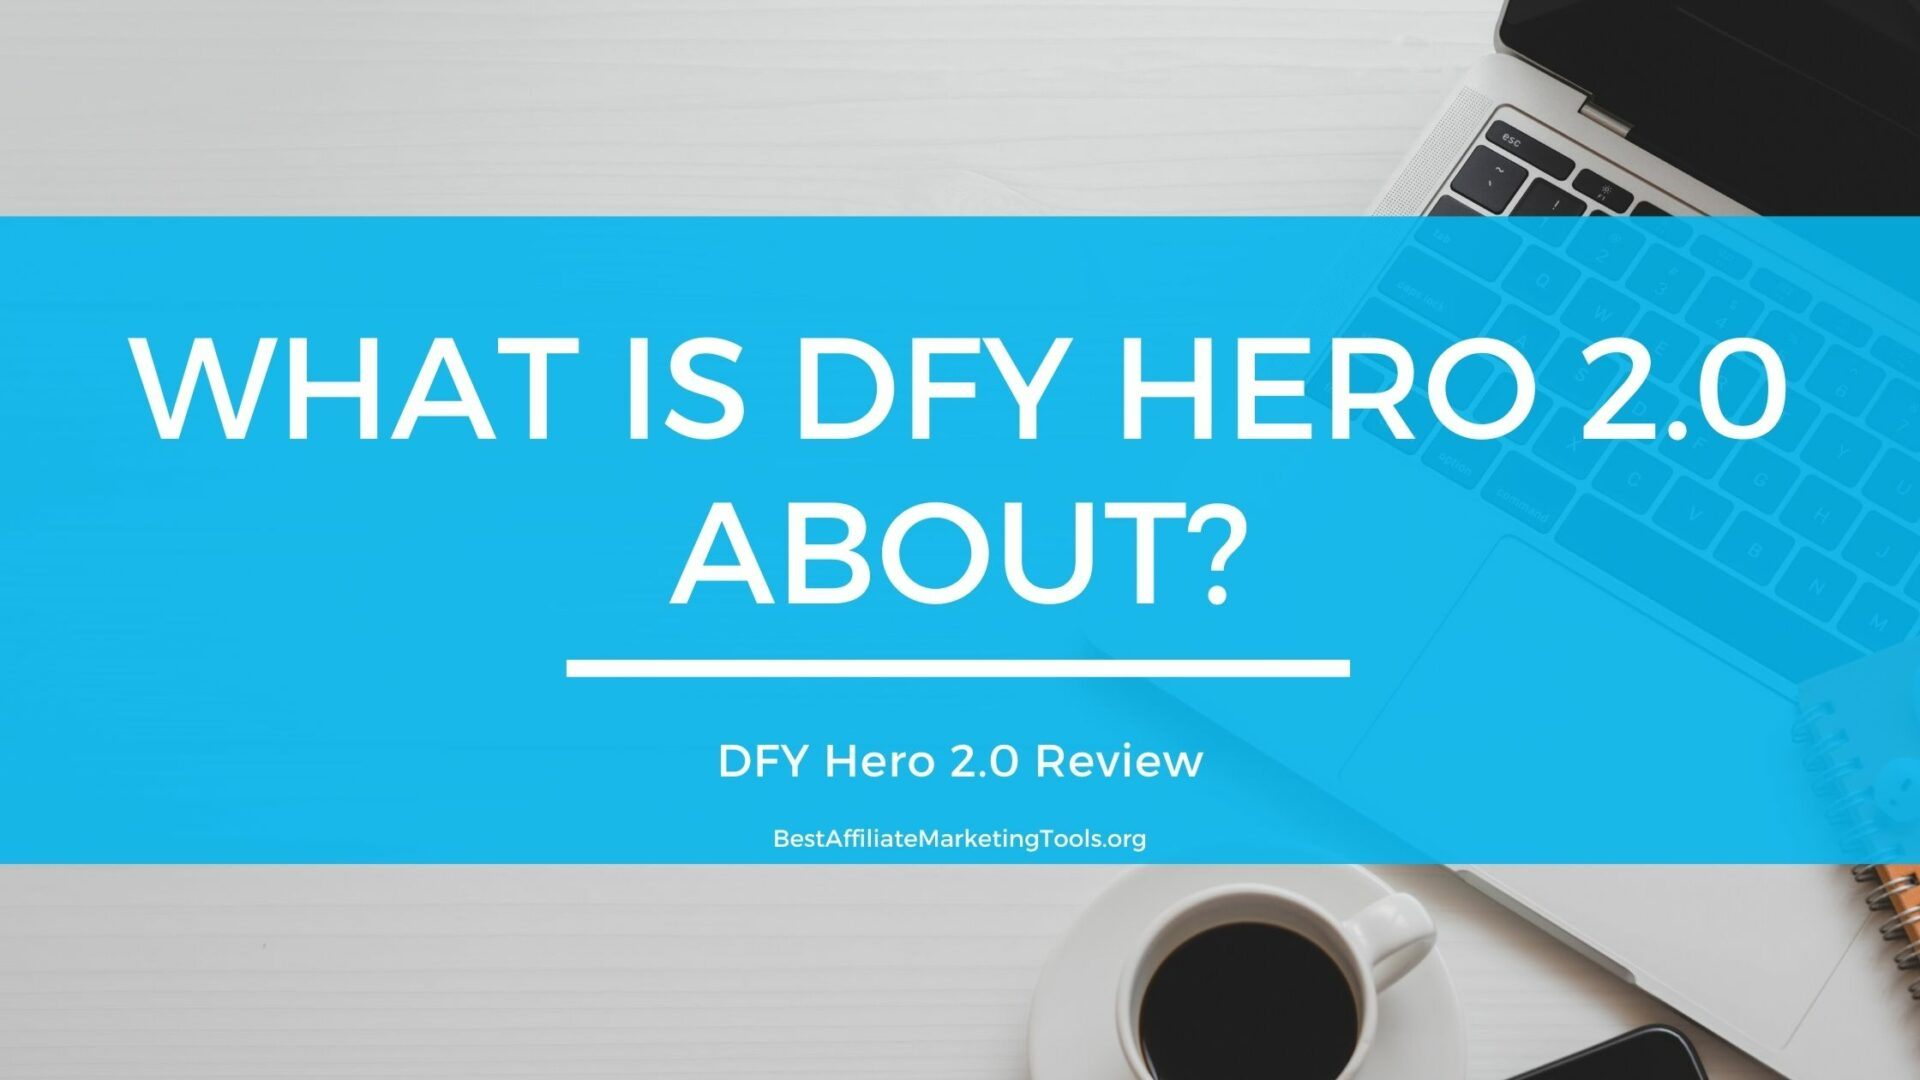 What is DFY Hero 2.0 About